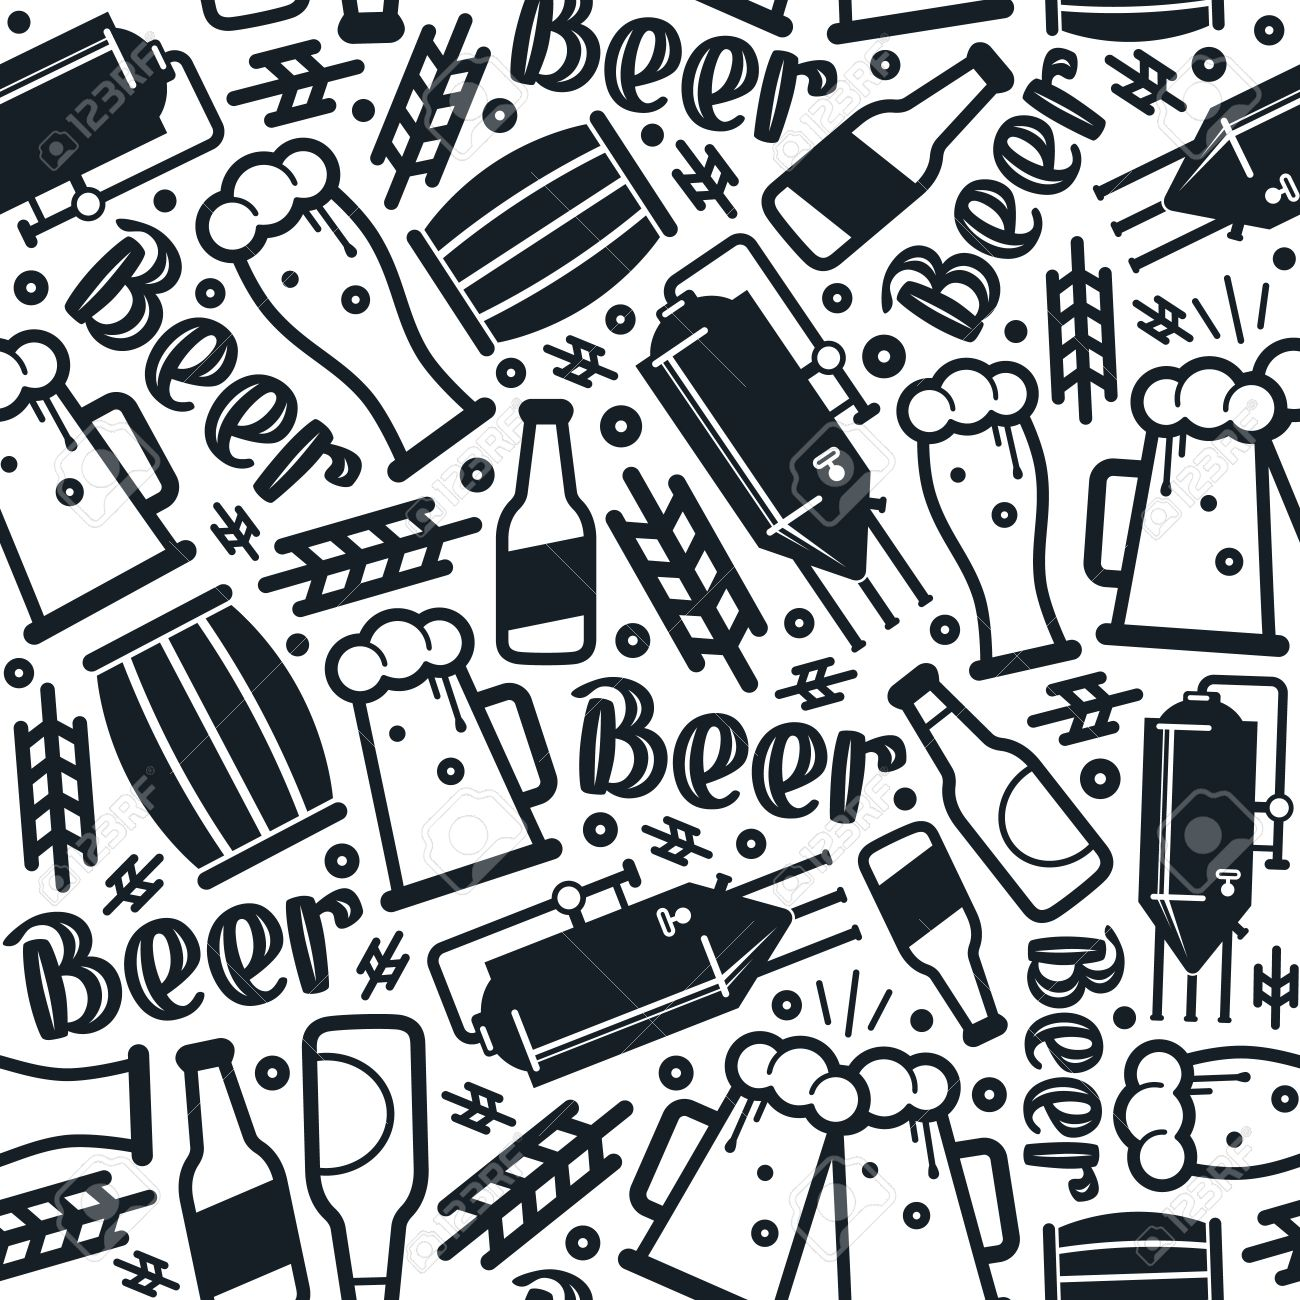 Craft Beer Brewery Seamless Pattern Black Print On White Background Stock Vector